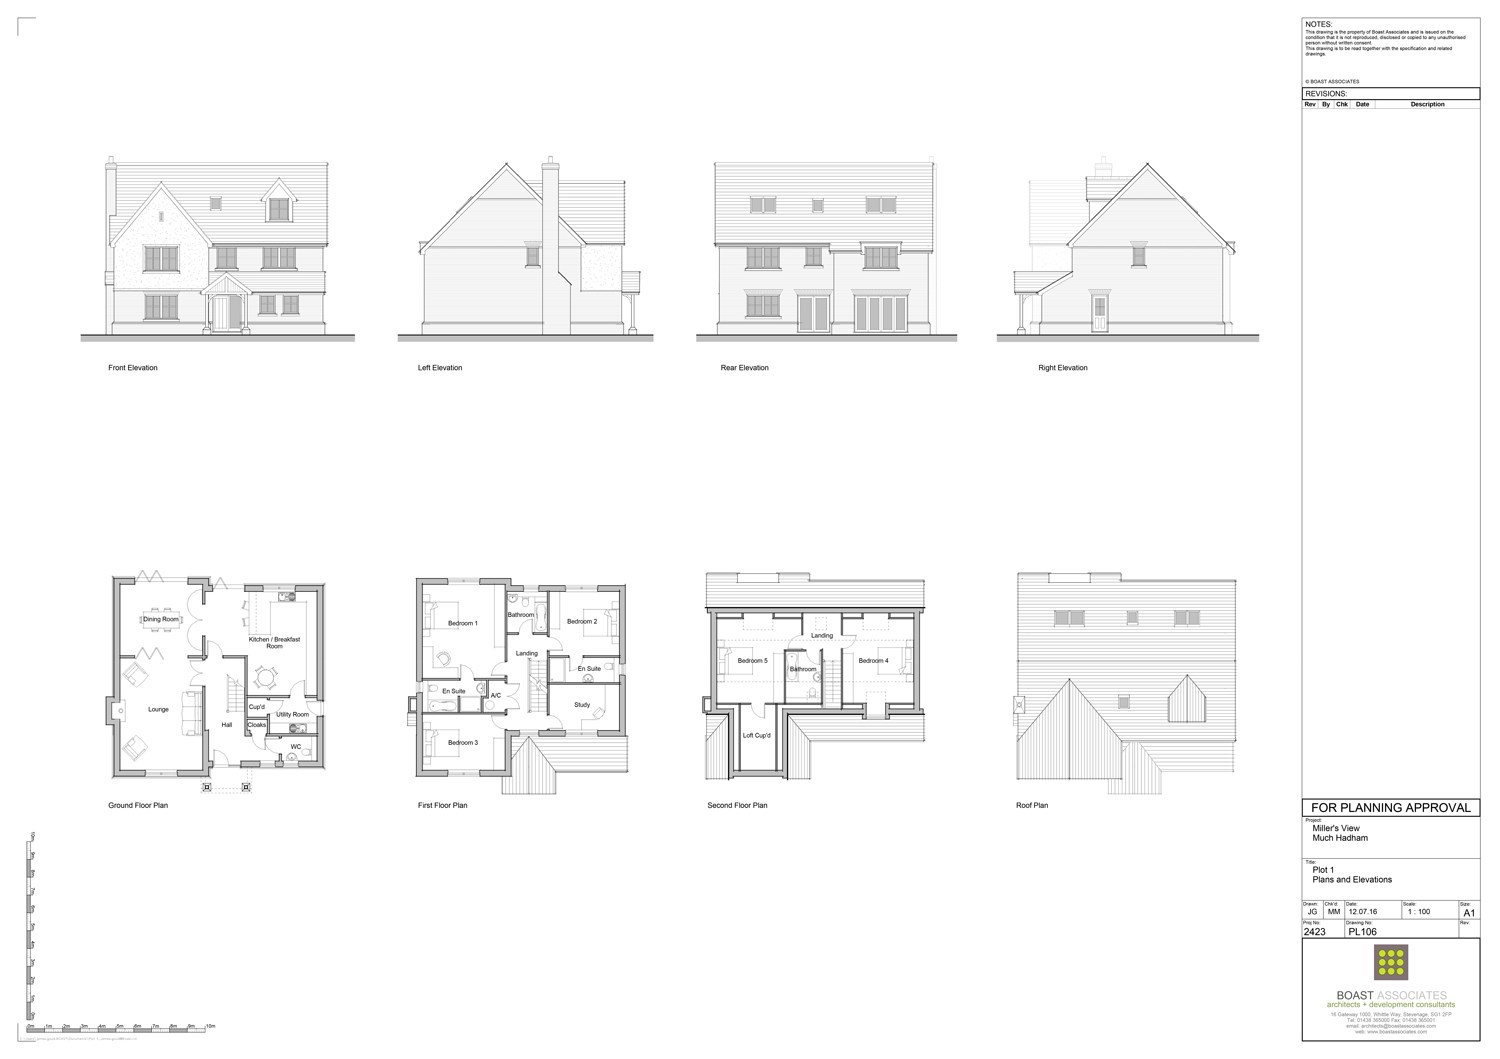 2423-pl106-plot-1-plans-and-elevations.jpg